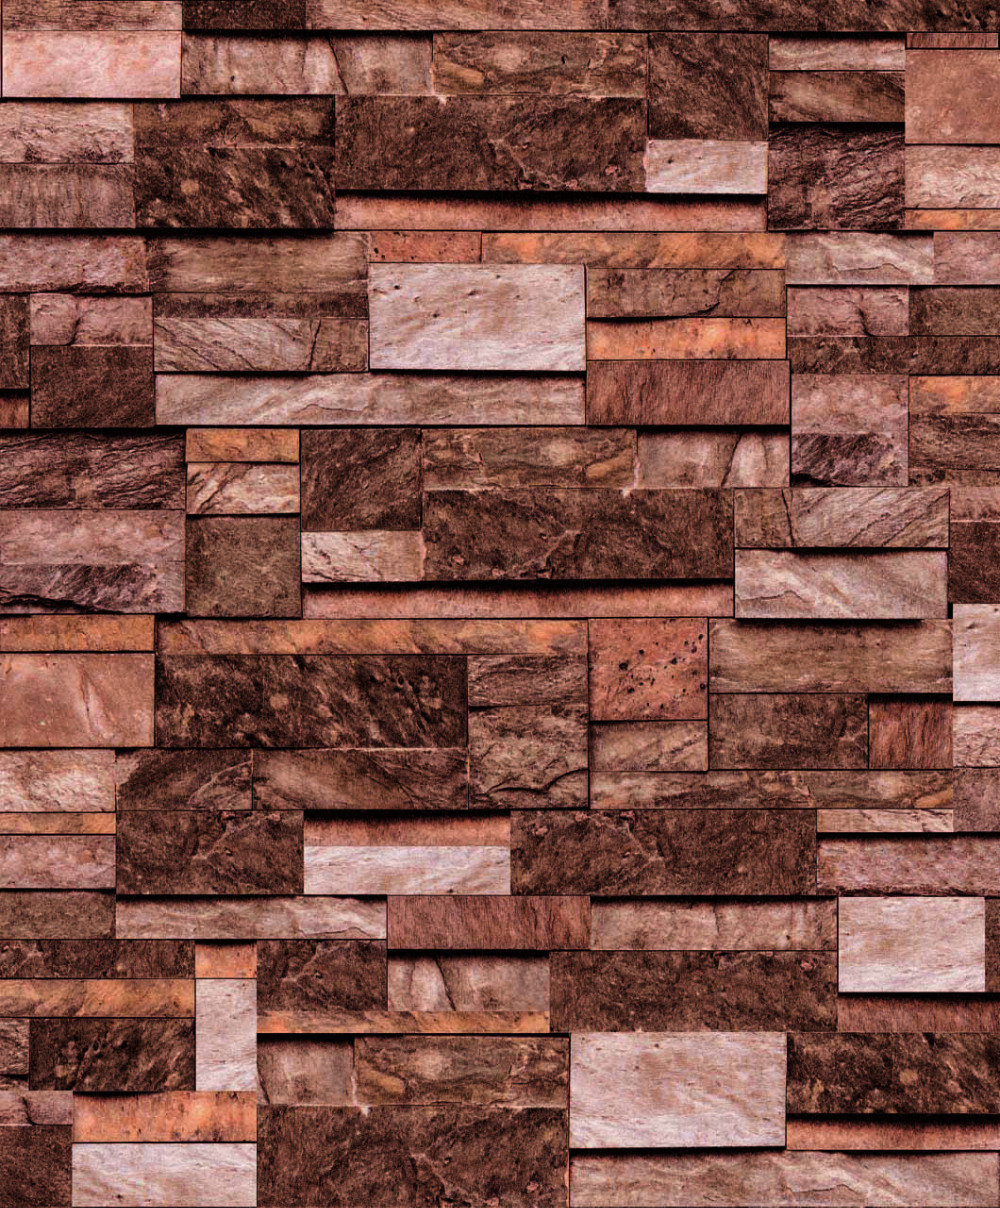 Brick design pvc wallpapers 3d brick wall paper 3d for 3d brick wall covering